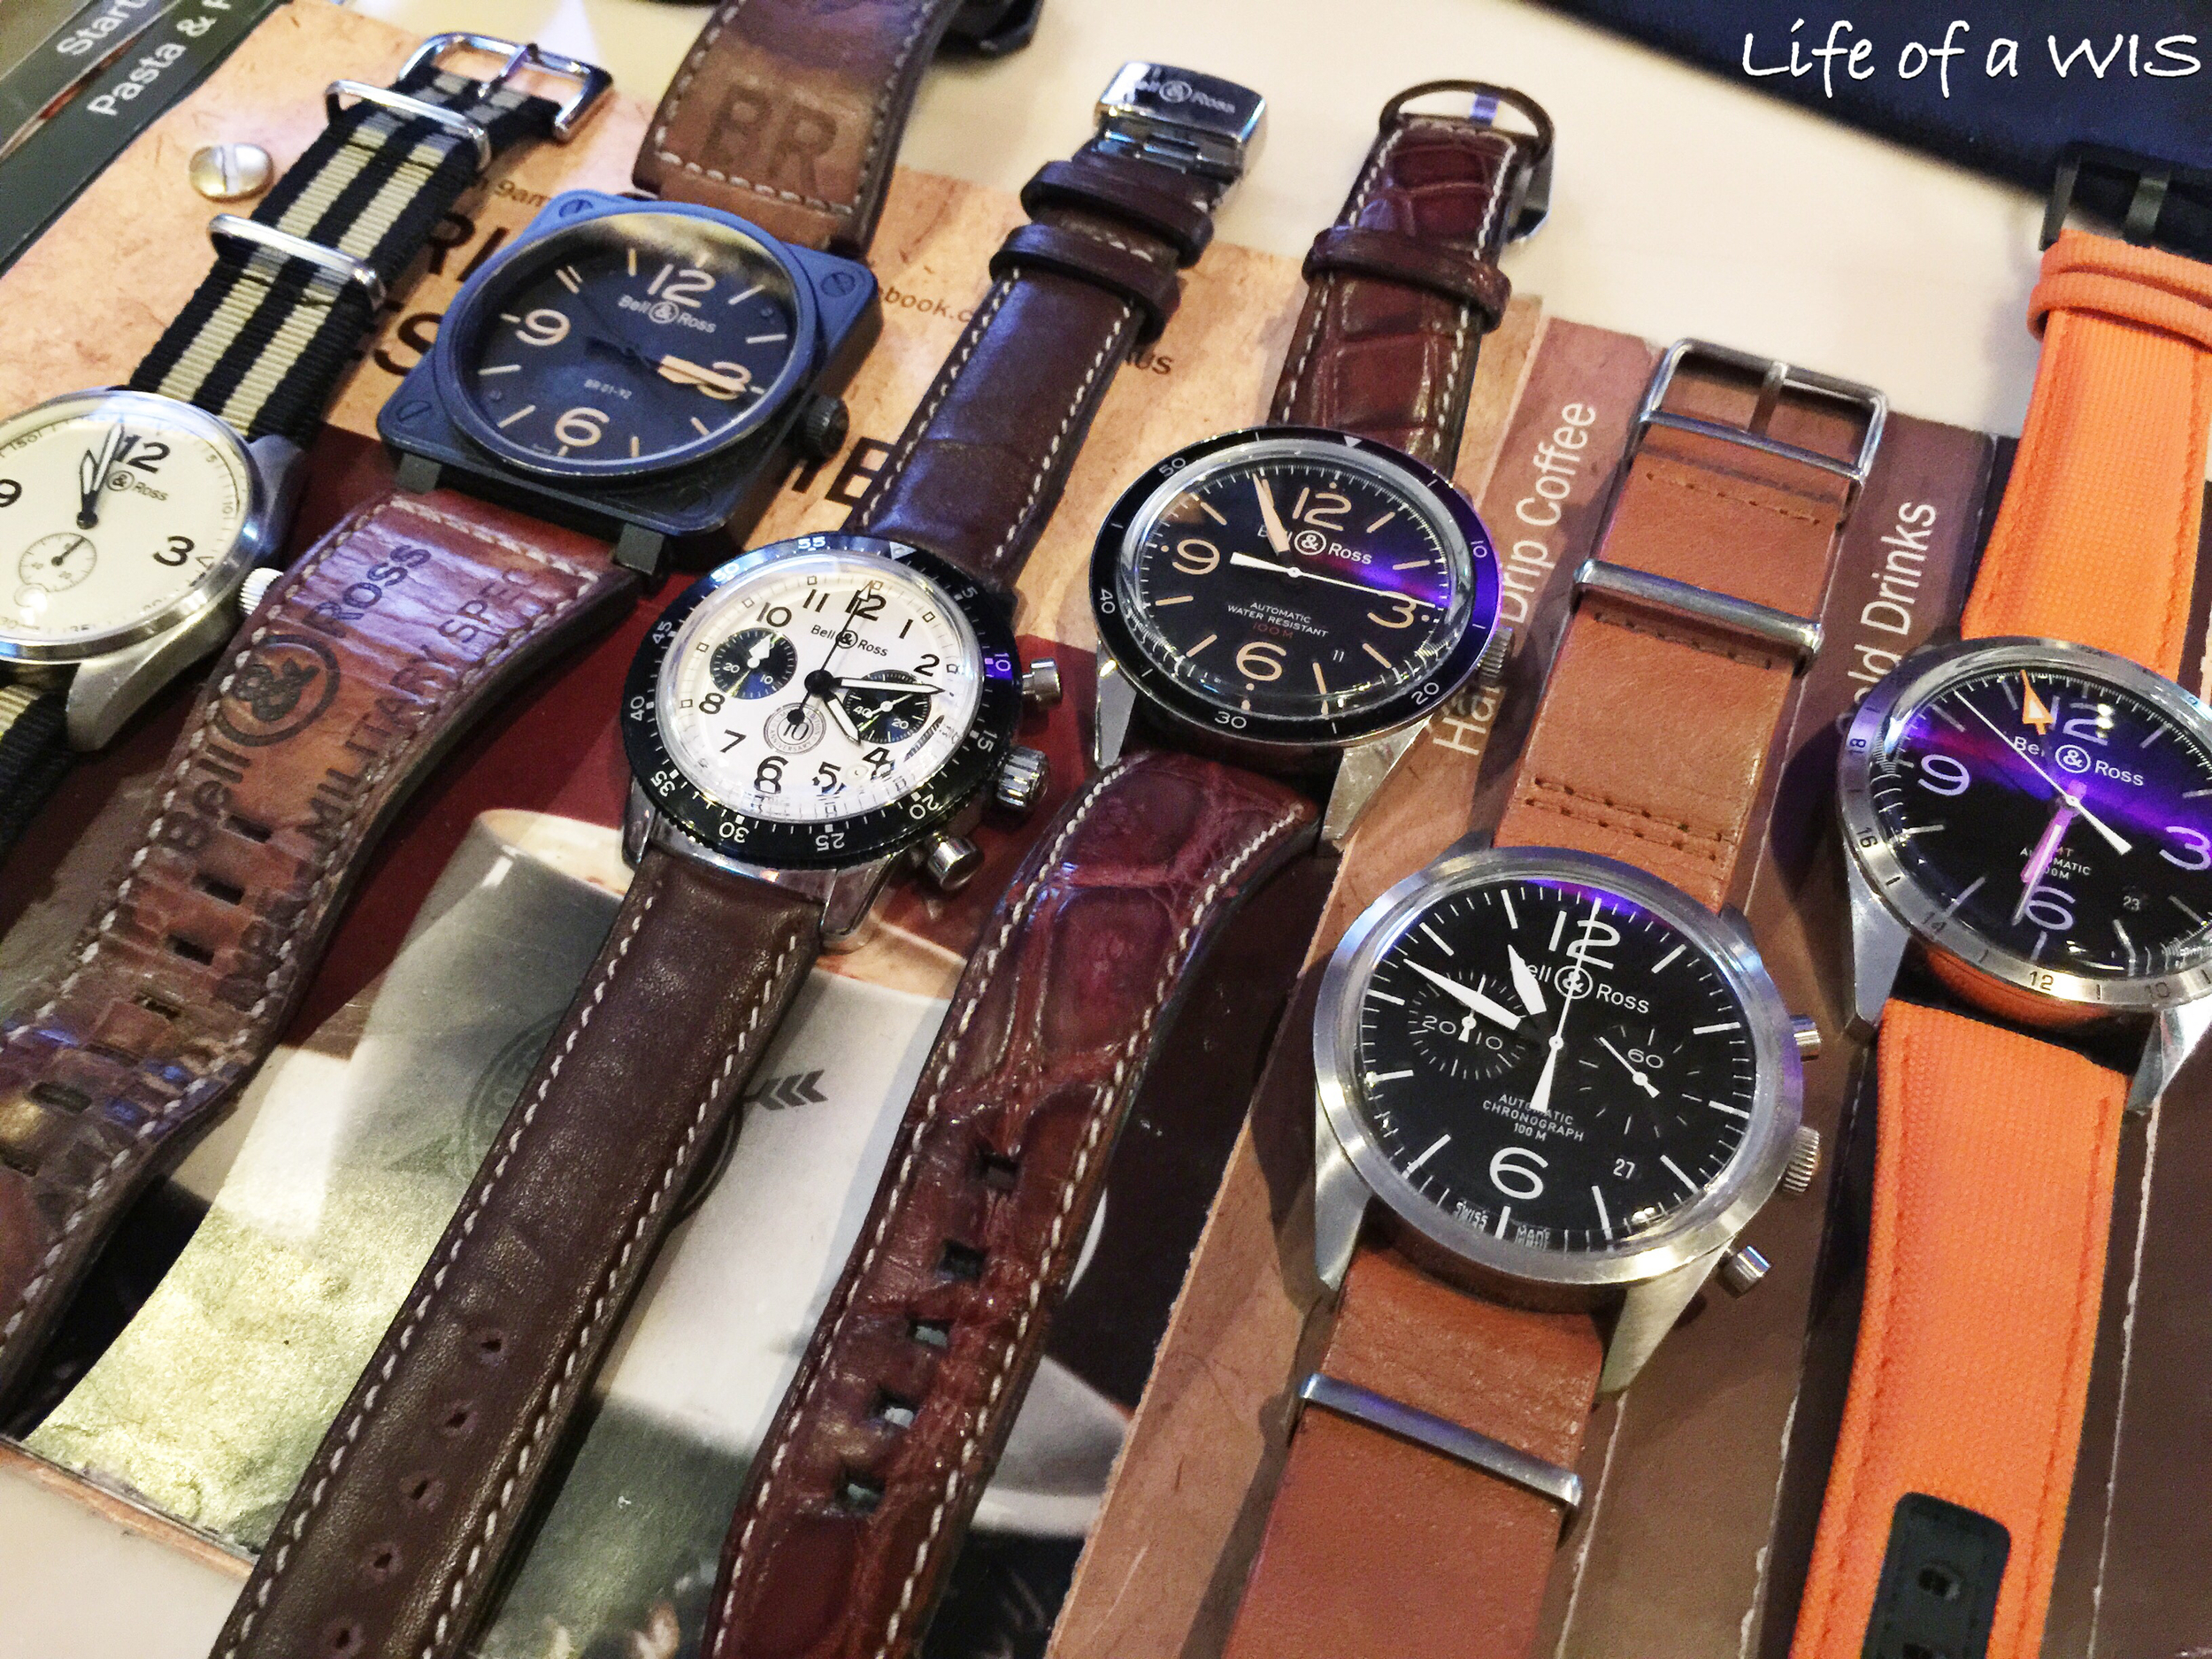 The Bell & Ross group.